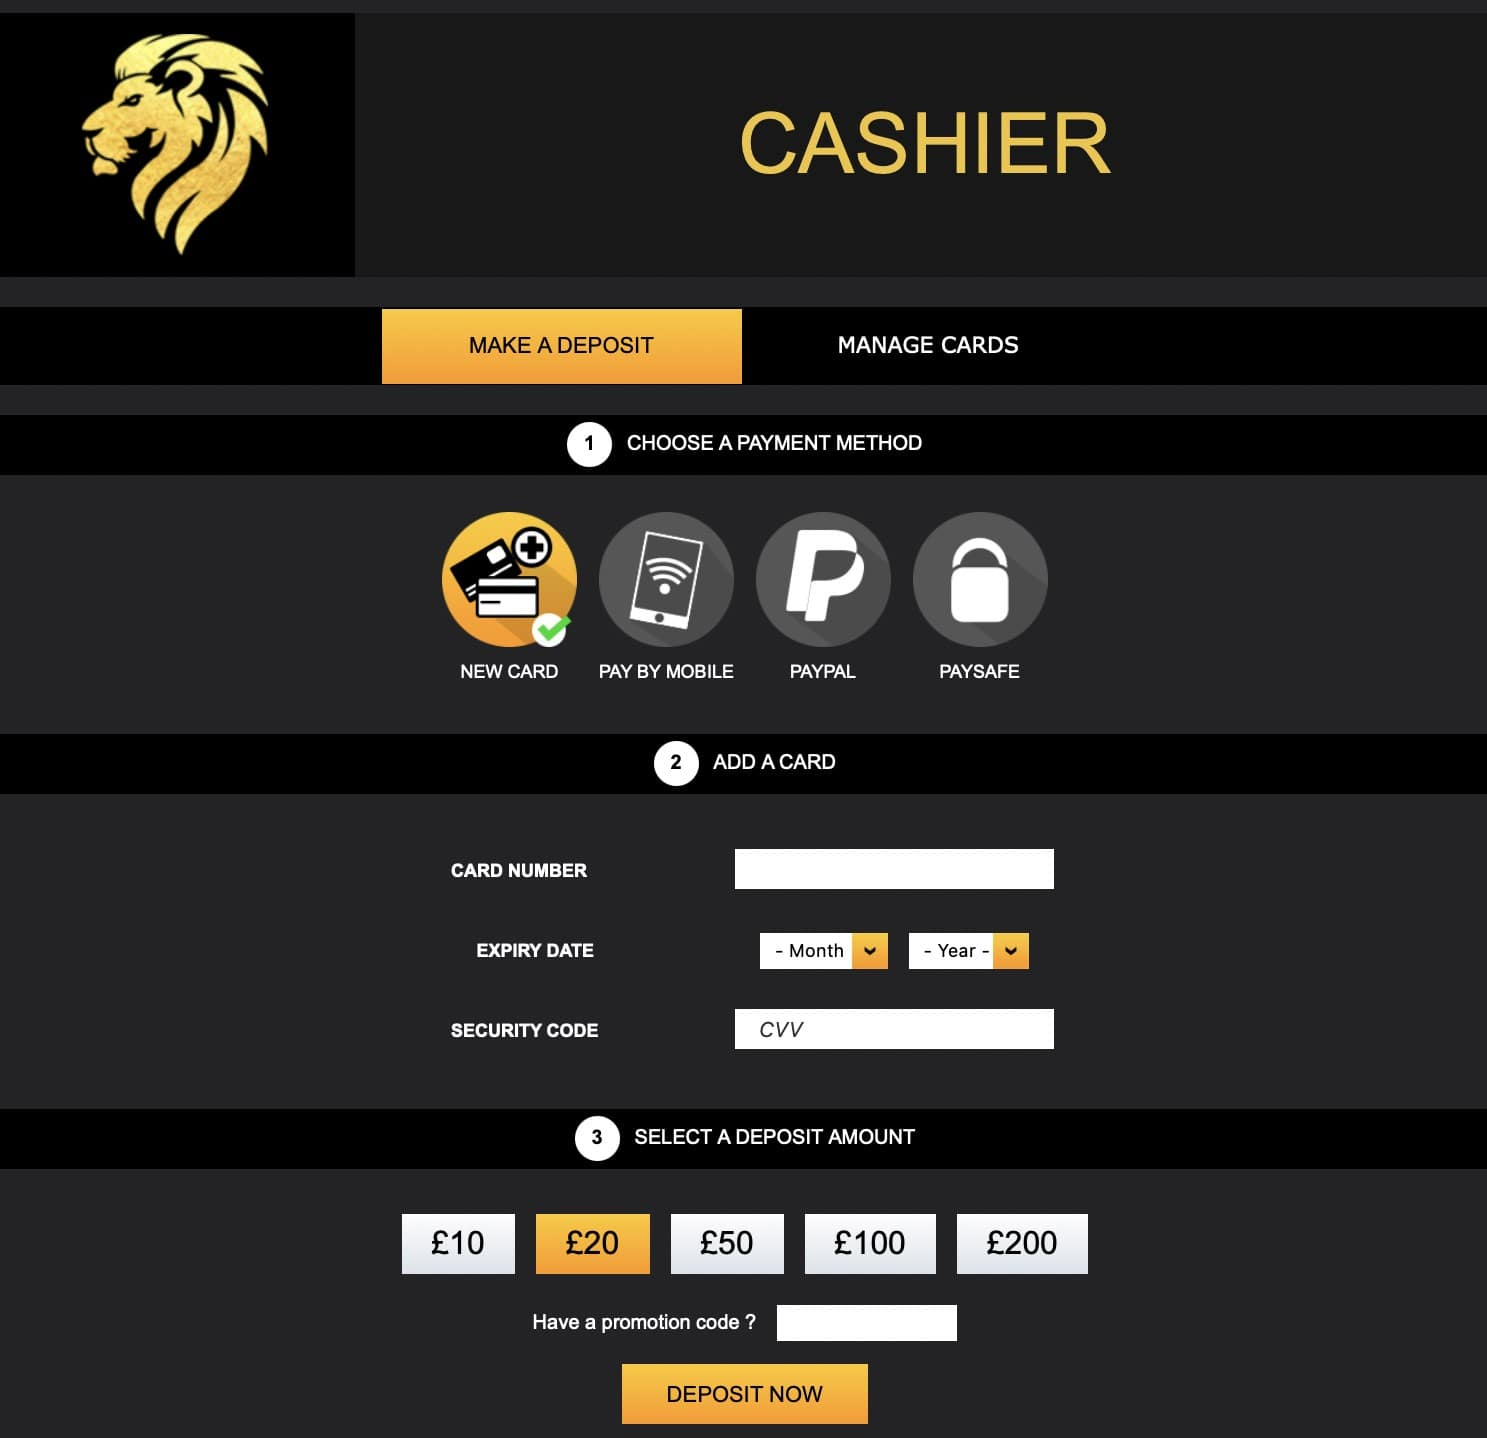 Play Leon Casino Deposit and Withdrawal Policy